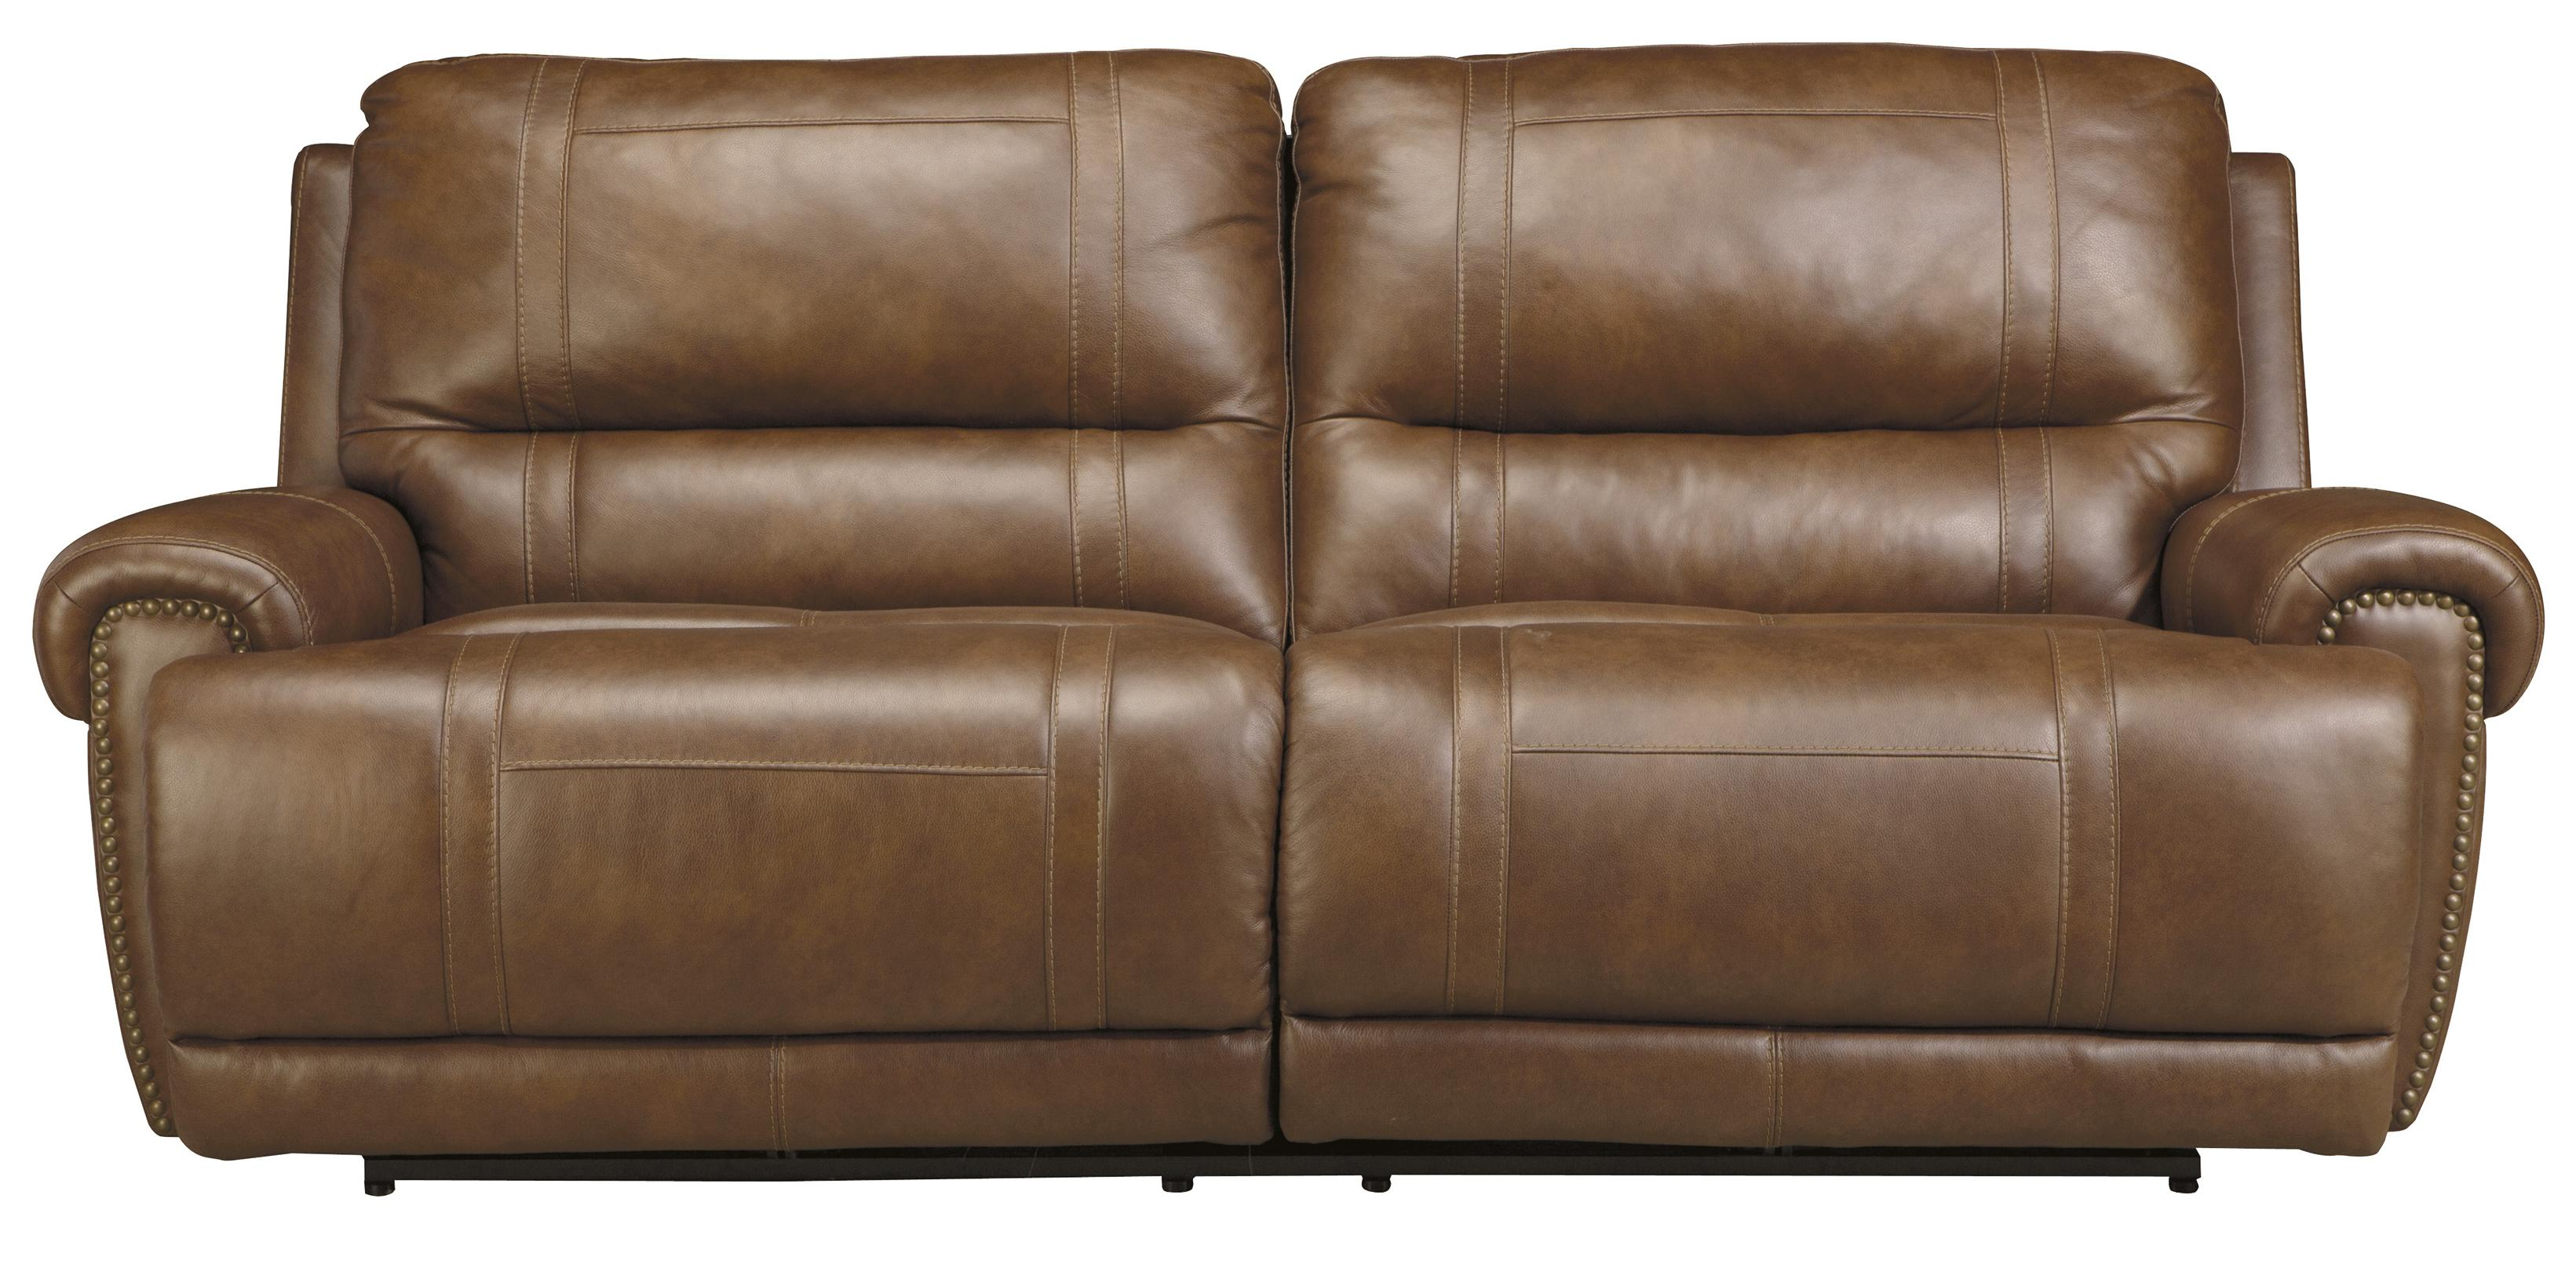 Signature Design by Ashley Paron Vintage 2 Seat Reclining Power